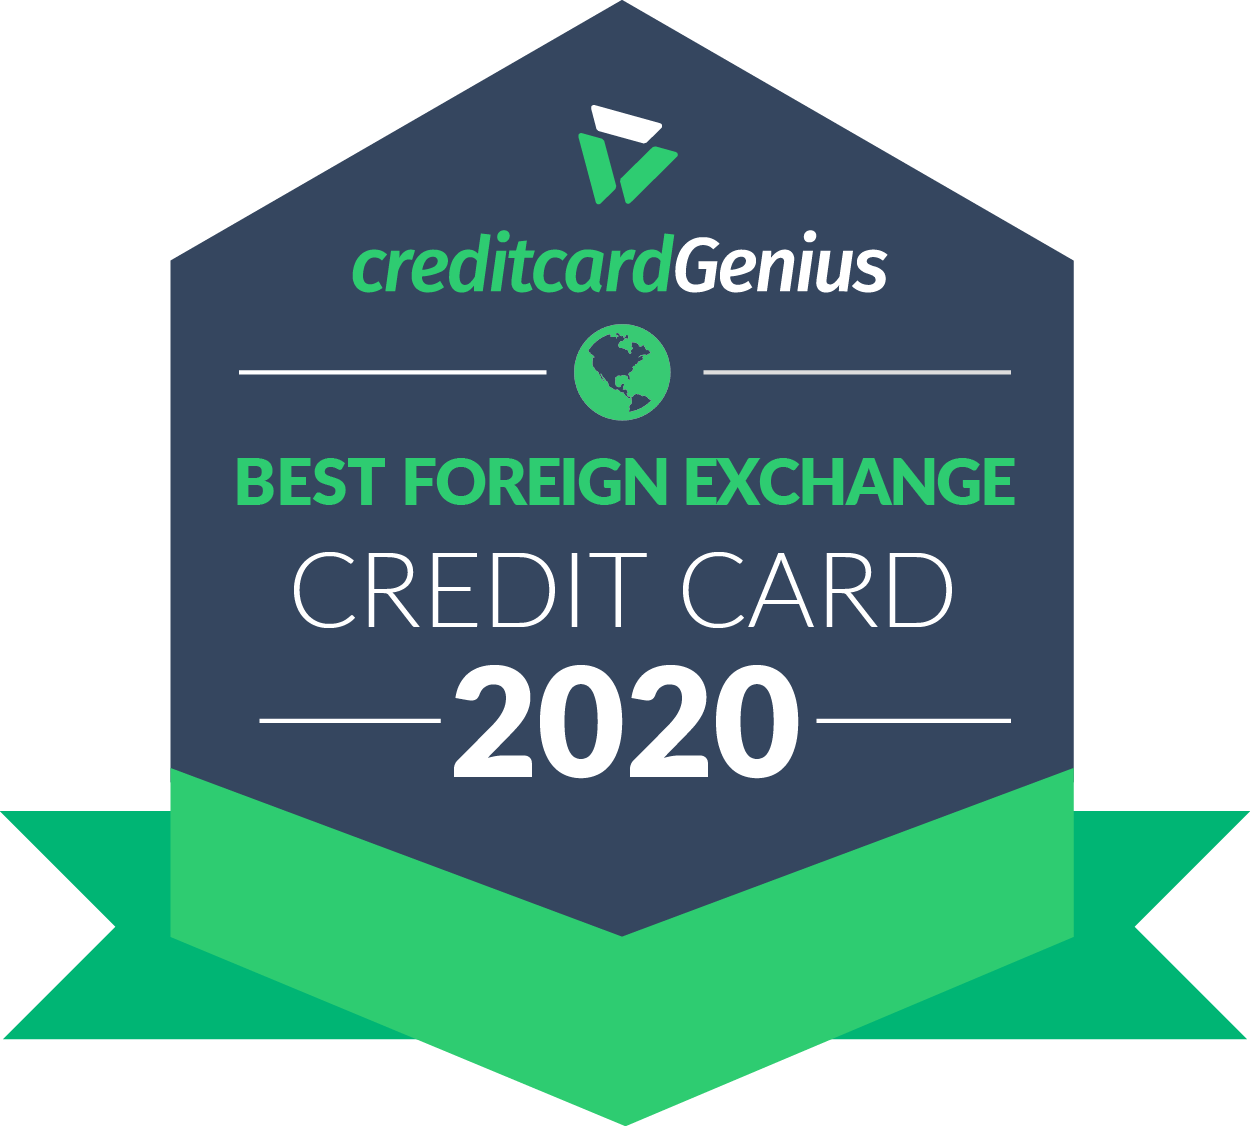 Best foreign exchange credit card in Canada for 2020 award seal